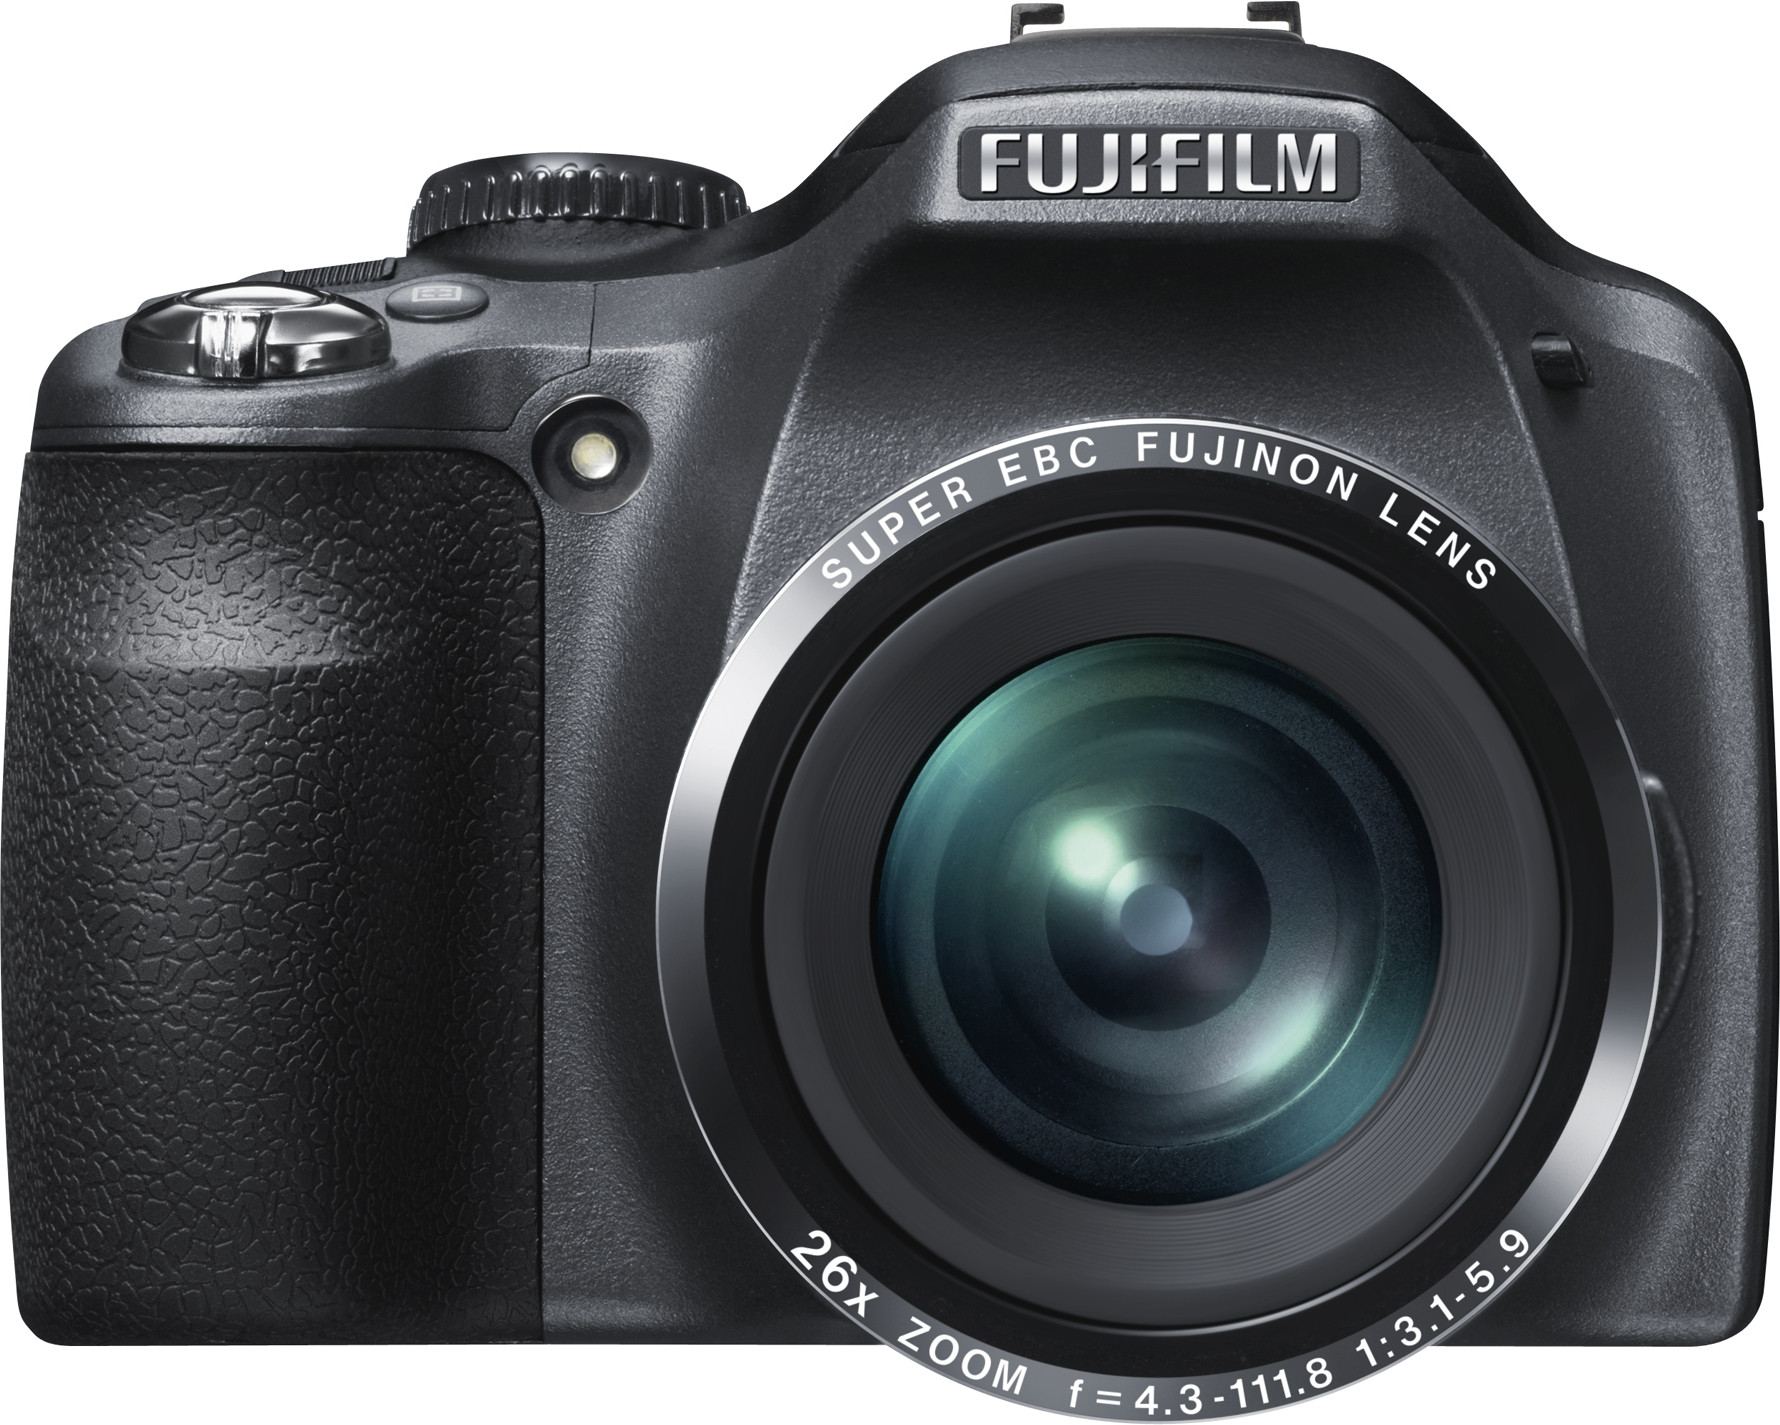 Fujifilm SL260 Point & Shoot Camera(Black)